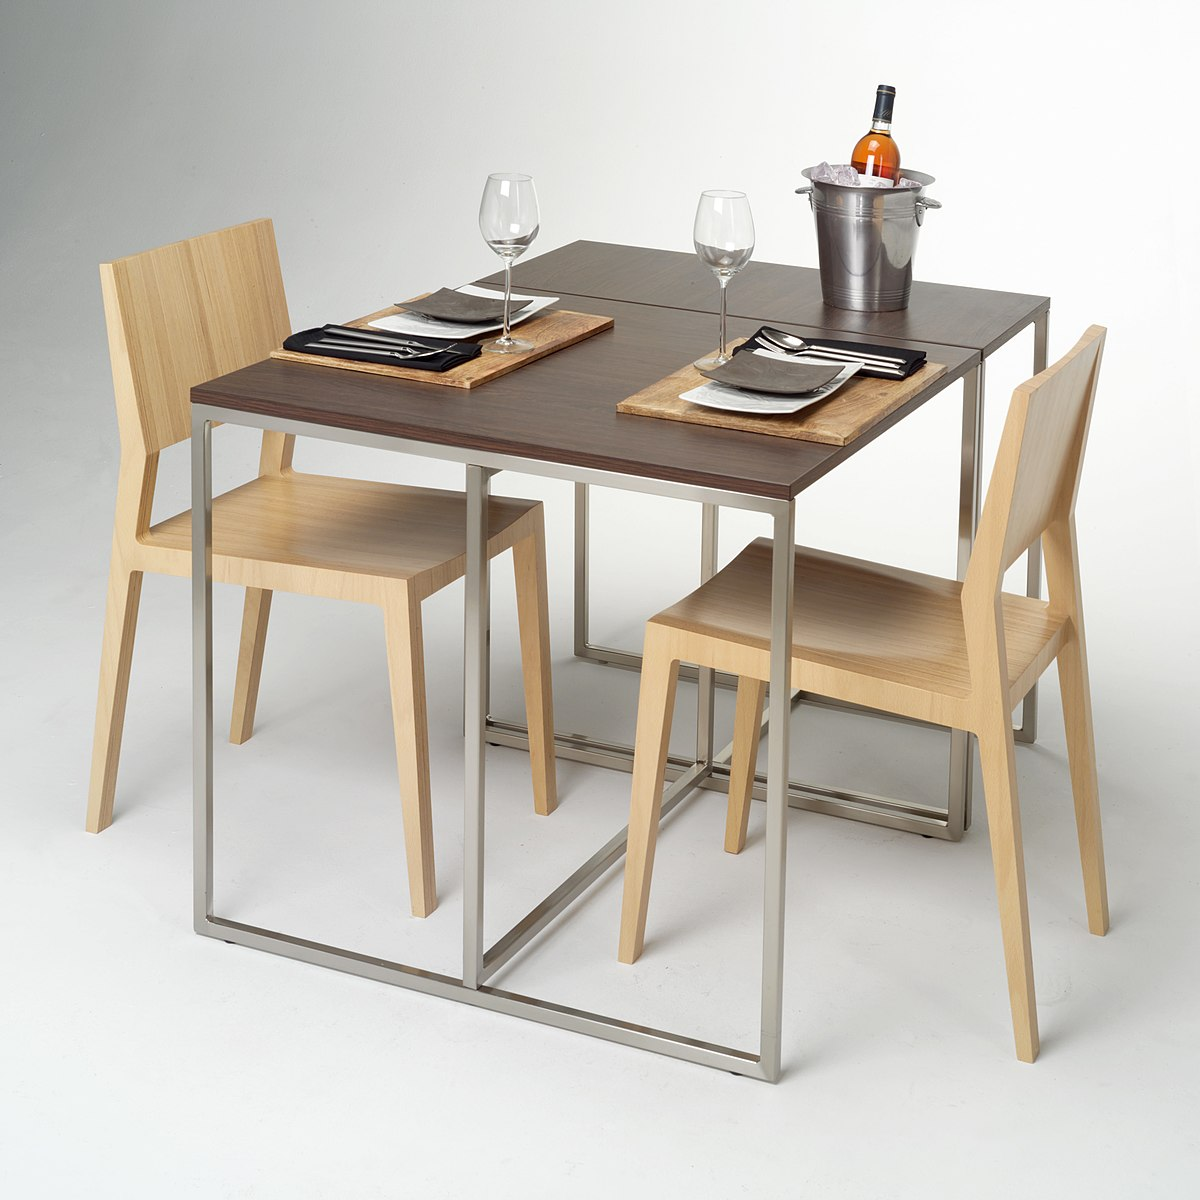 Furniture wikipedia - Dining table images ...